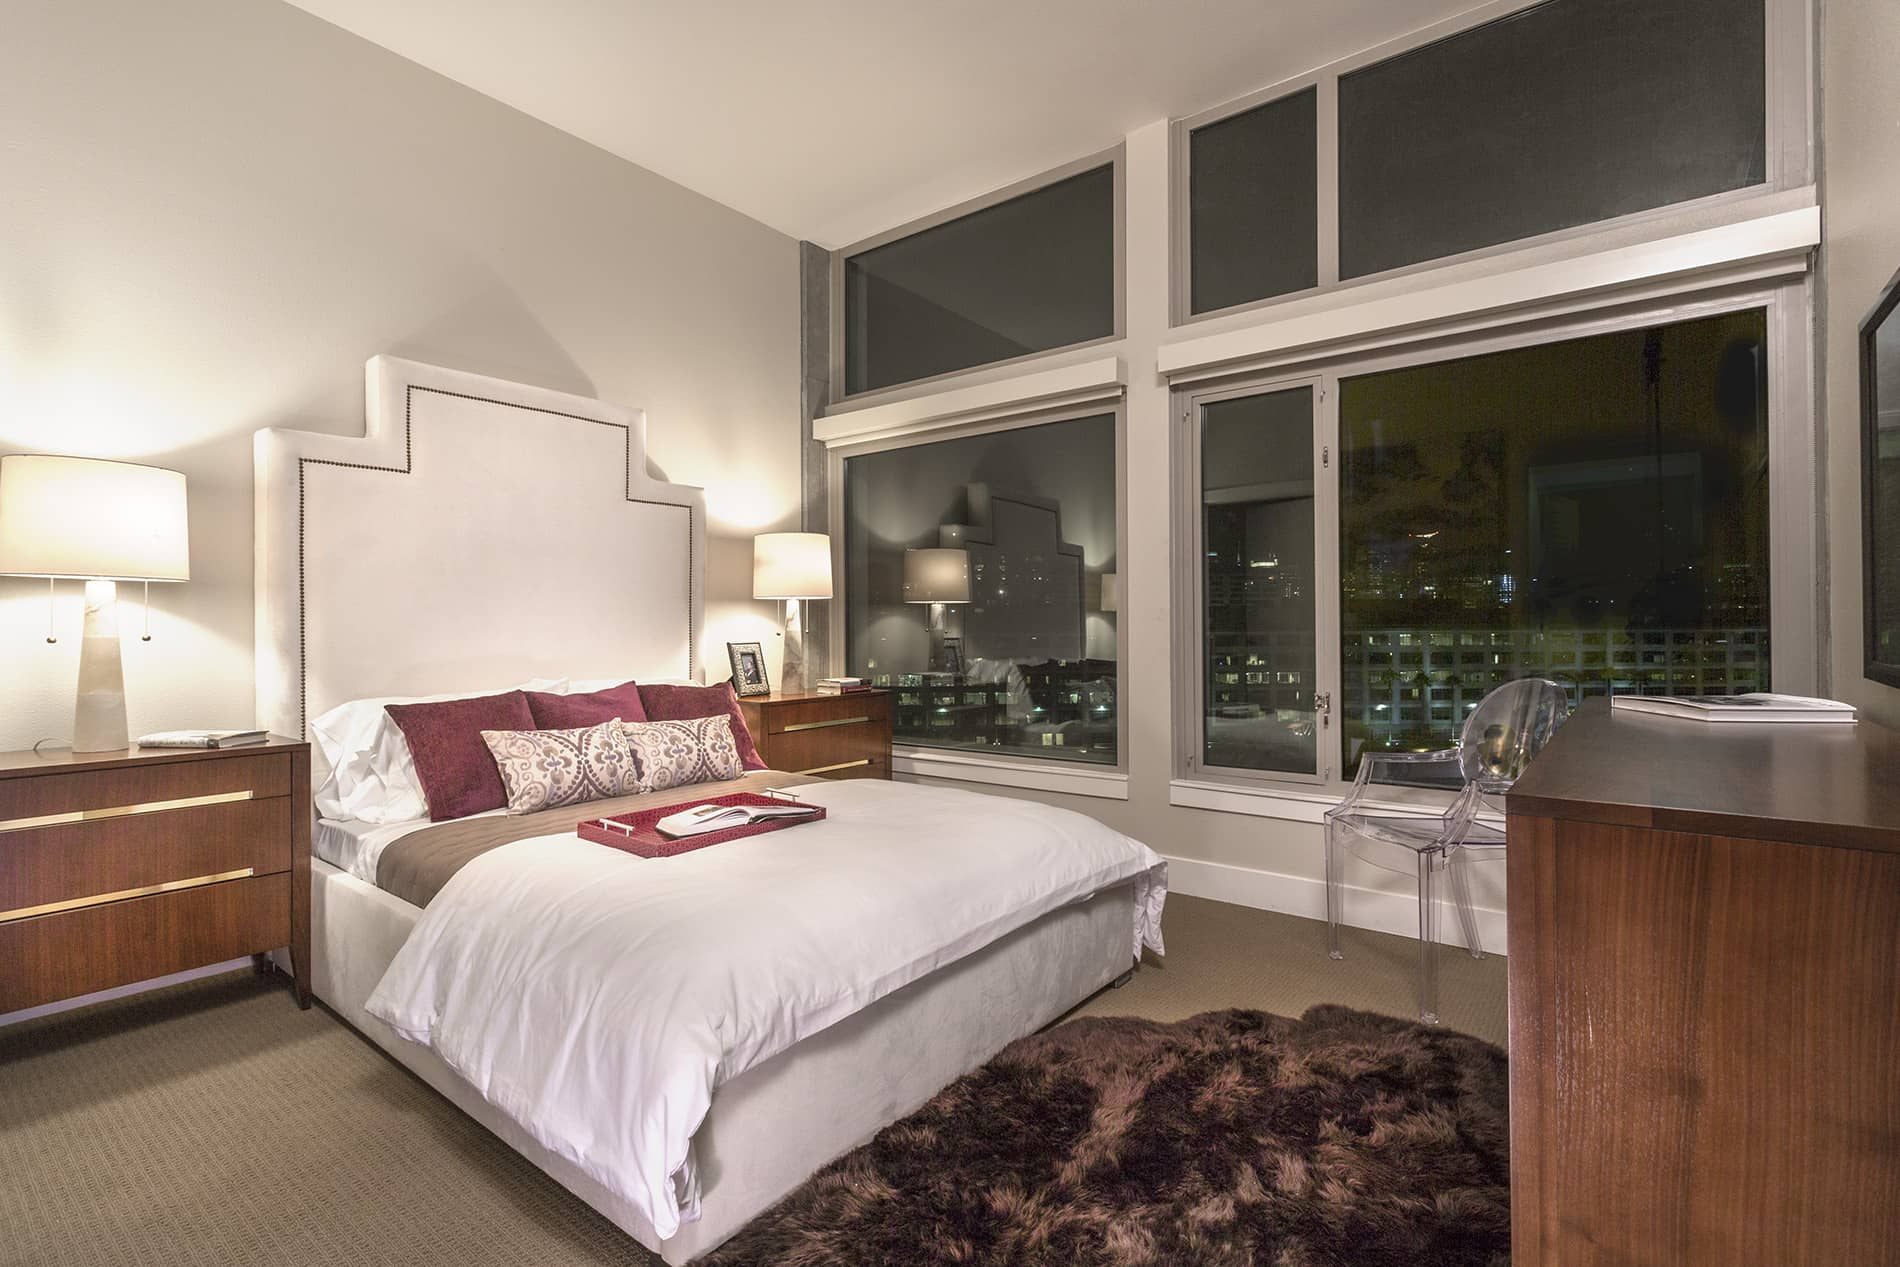 Bedroom at Channel Mission Bay Serviced Apartments